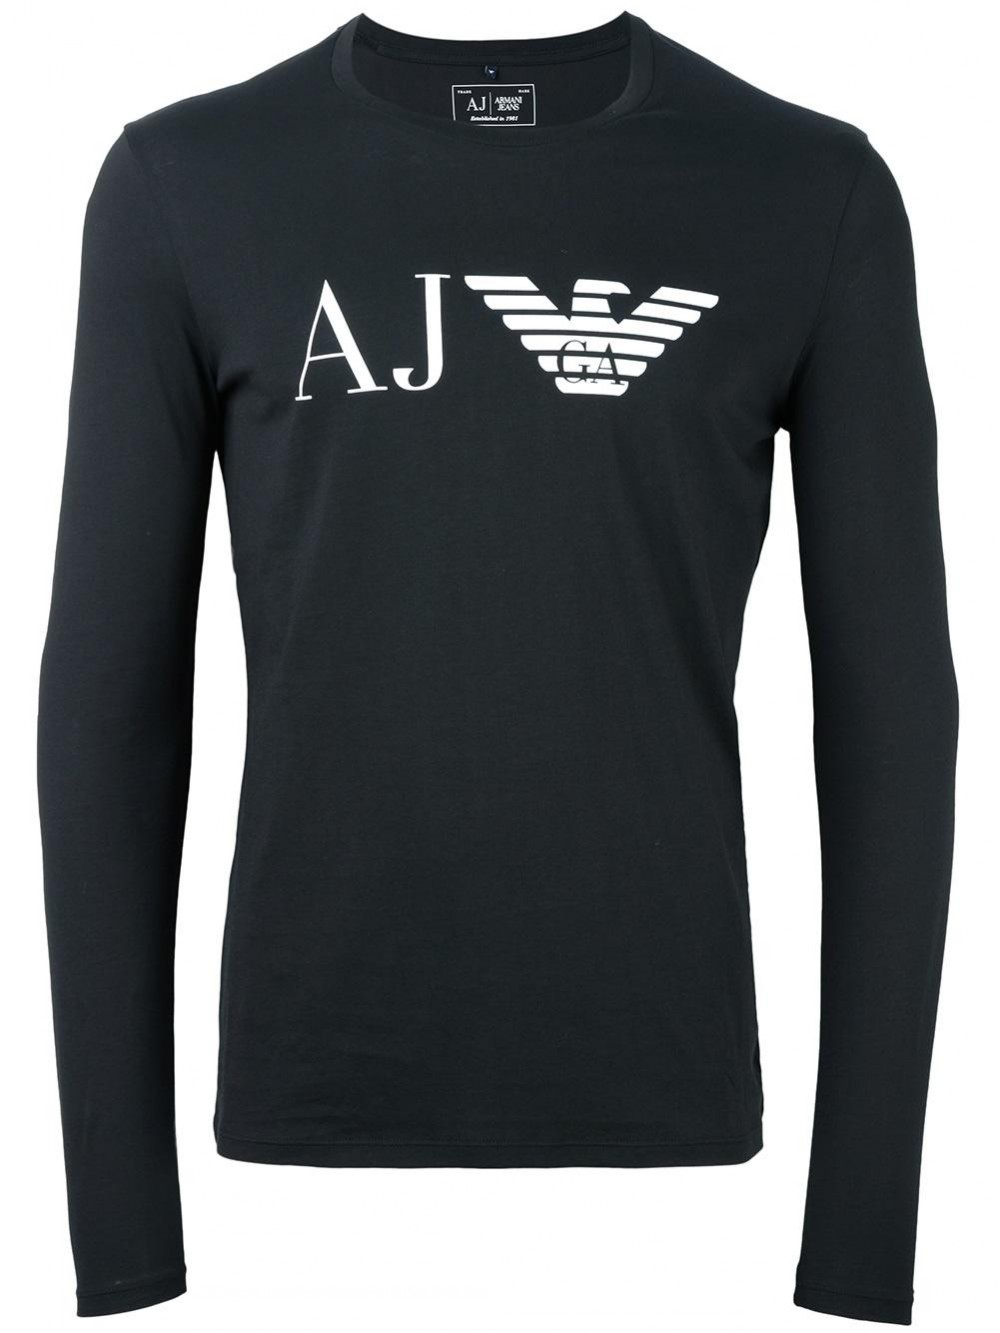 LS T-Shirt By Armani Jeans $60.5